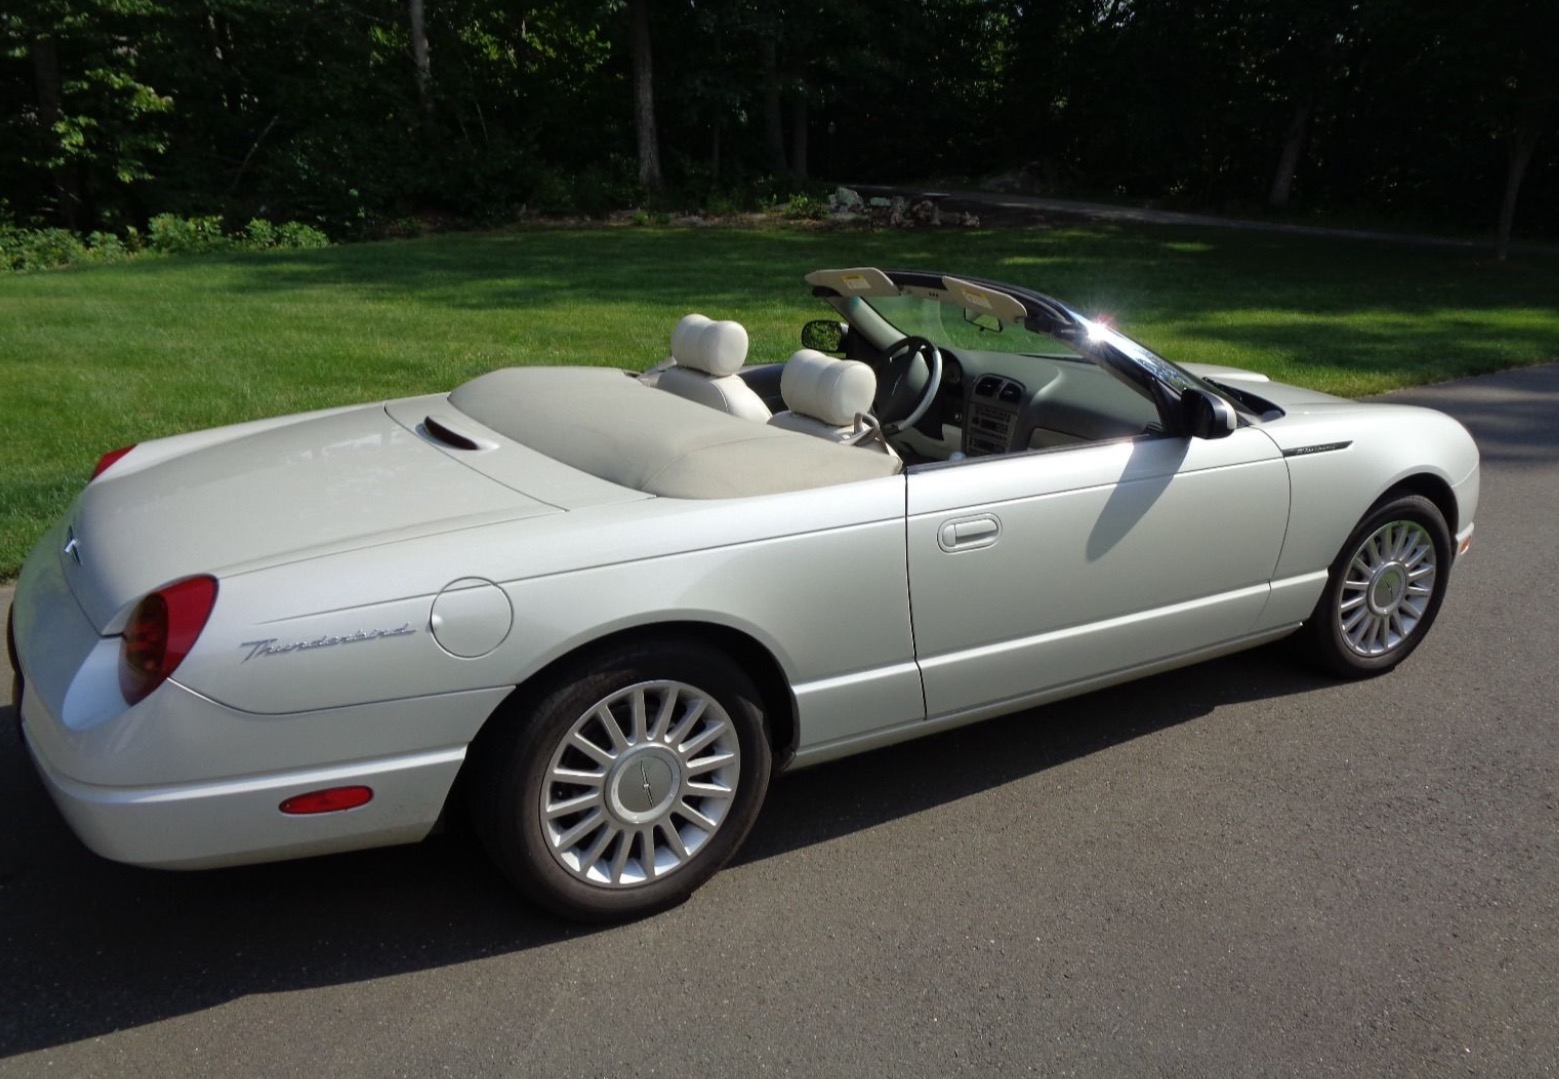 2005 ford thunderbird 50th anniversary for sale at vicari auctions biloxi 2017. Black Bedroom Furniture Sets. Home Design Ideas